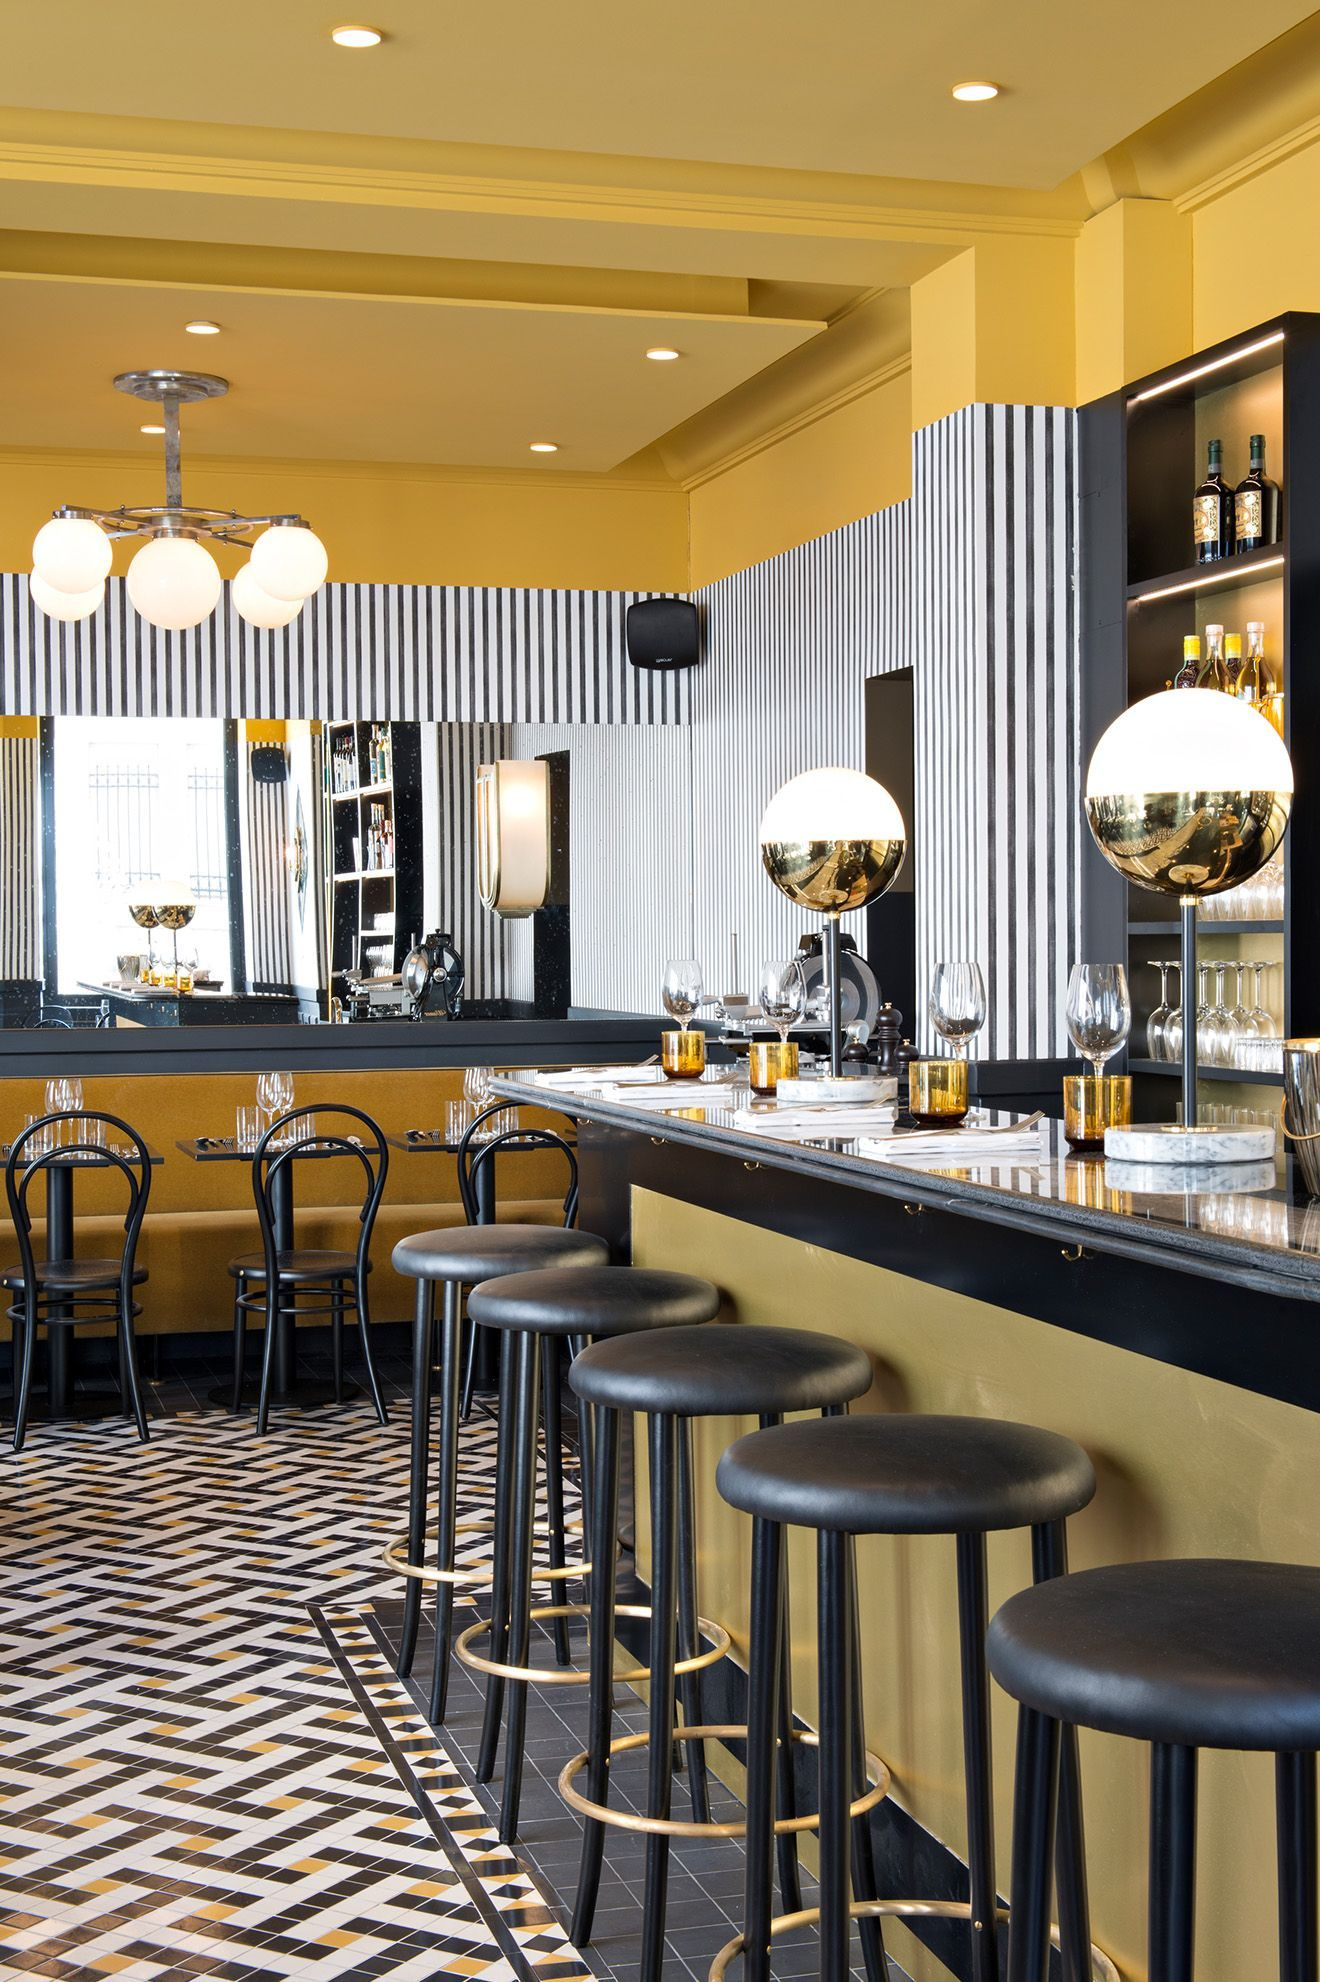 Black And White Striped Wallpaper With Decorative Tiled Floor Featuring Hints Of Mustard To Reflect The Re Design Interieur Restaurant Deco Restaurant Art Deco